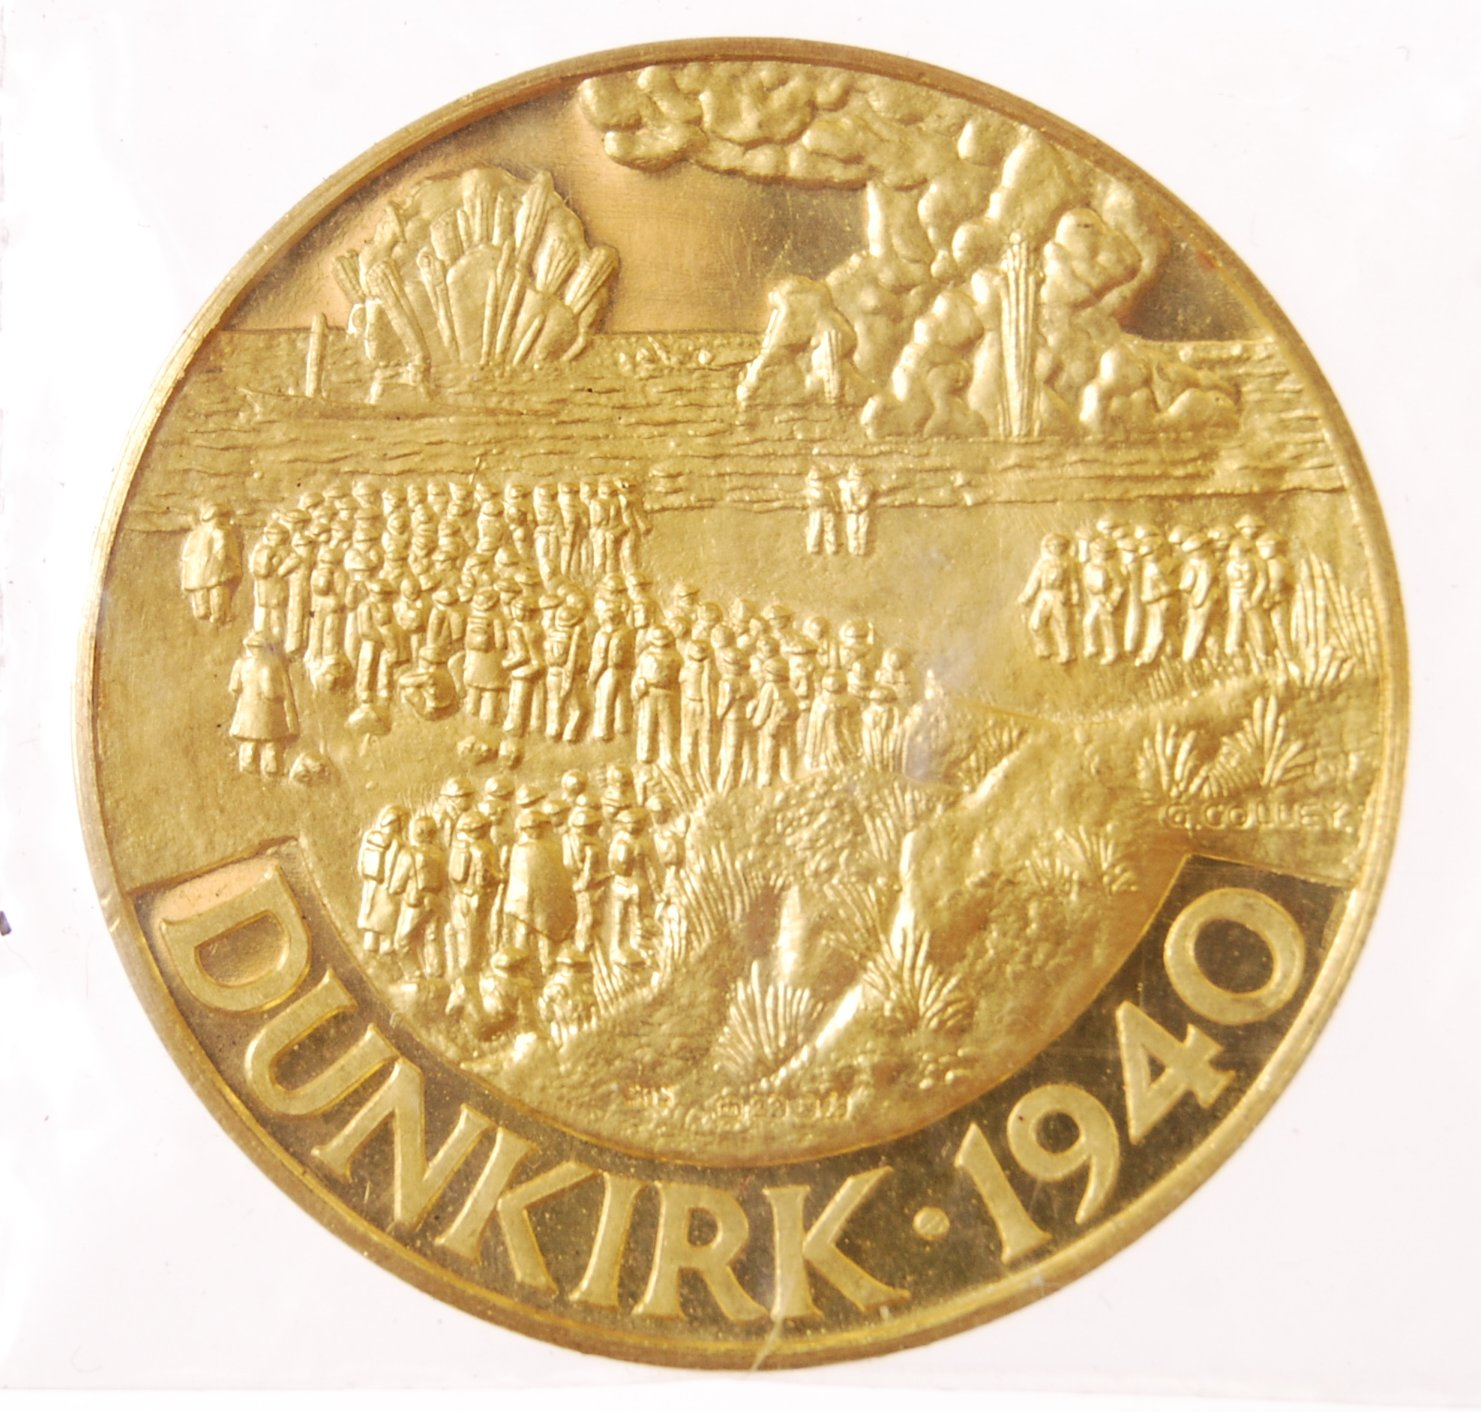 22CT GOLD 25TH ANNIVERSARY OF DUNKIRK COMMEMORATIVE COIN - Image 2 of 5